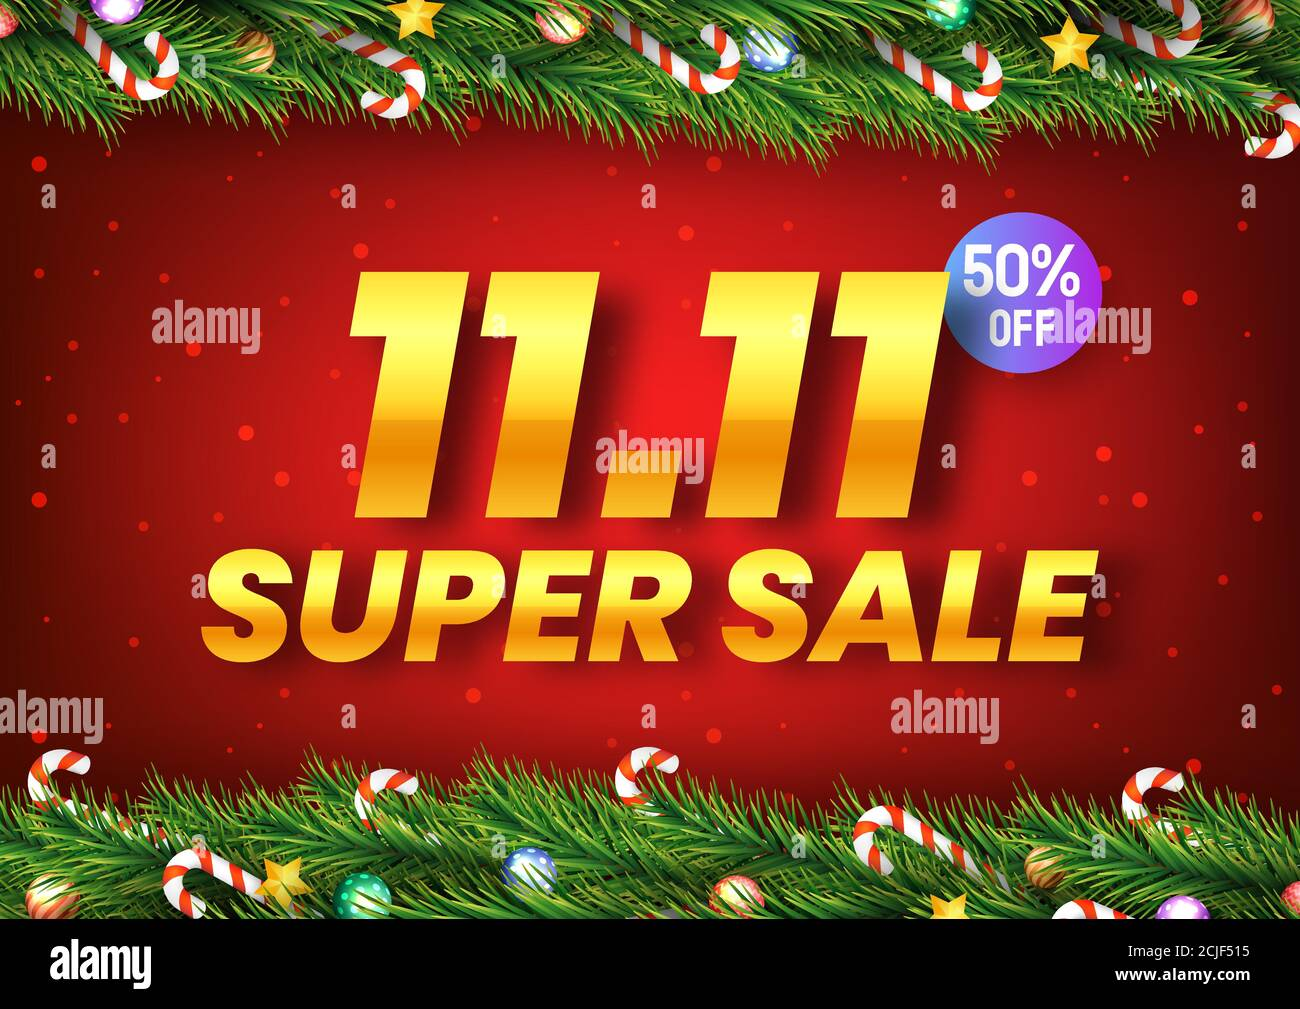 Golden November 11 Super Sale Shopping Day With Christmas Tree Branches Decorated With Stars Balls And Candy Canes On Red Background For Poster Web Stock Vector Image Art Alamy